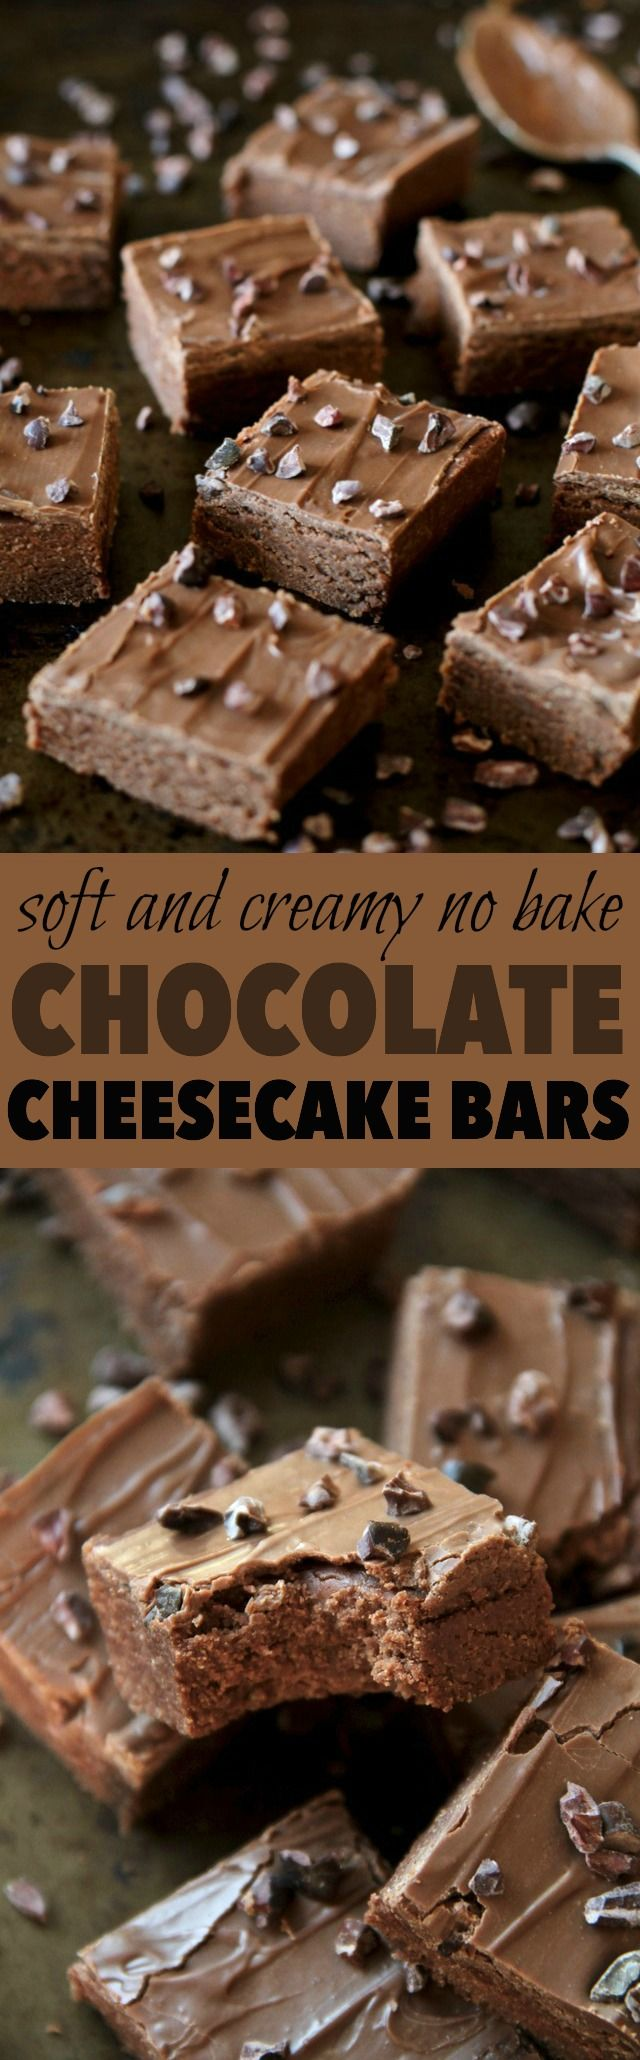 These soft and creamy No Bake Dark Chocolate Cheesecake Bars combine the subtle tanginess of cheesecake with the irresistible taste of dark chocolate. Easily made gluten-free or vegan depending on your dietary needs, they're a delicious lightened-up treat for any chocolate lover! || runnningwithspoons.com #chocolate #cheesecake #nobake